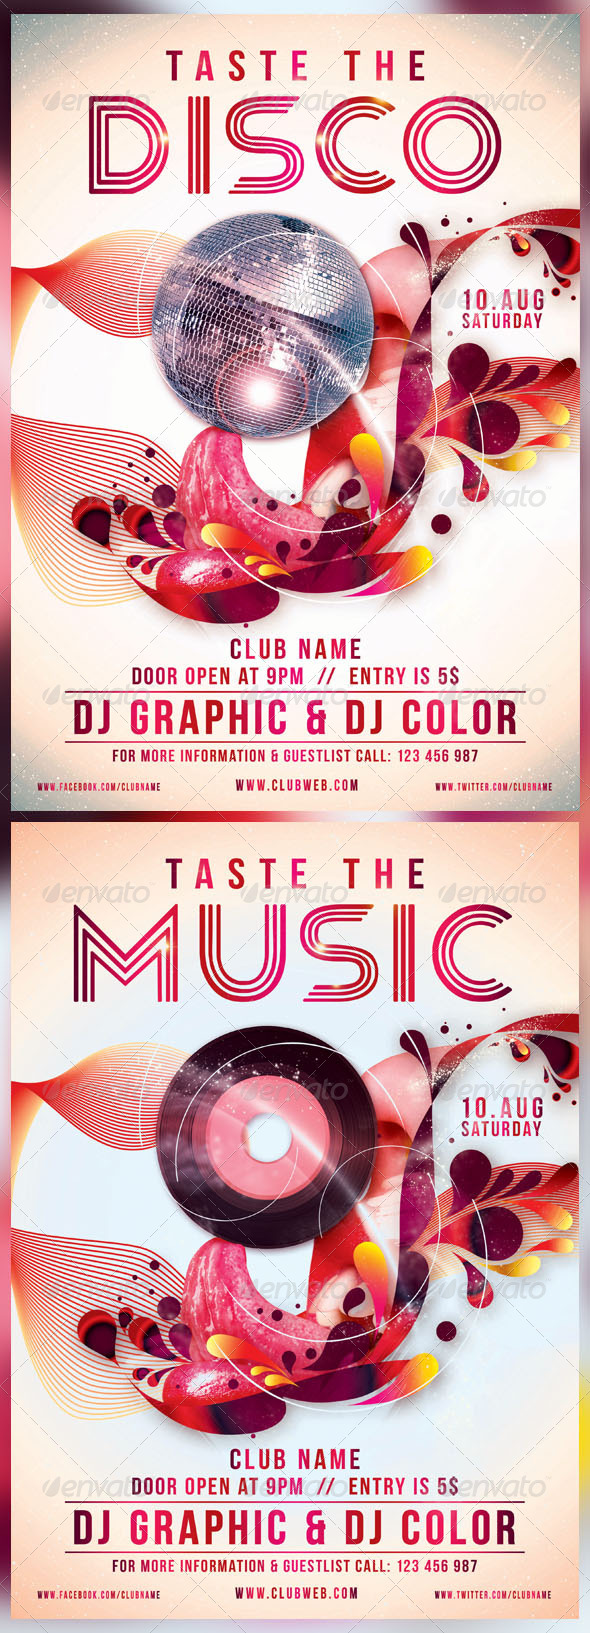 Taste The Disco/Music - Events Flyers